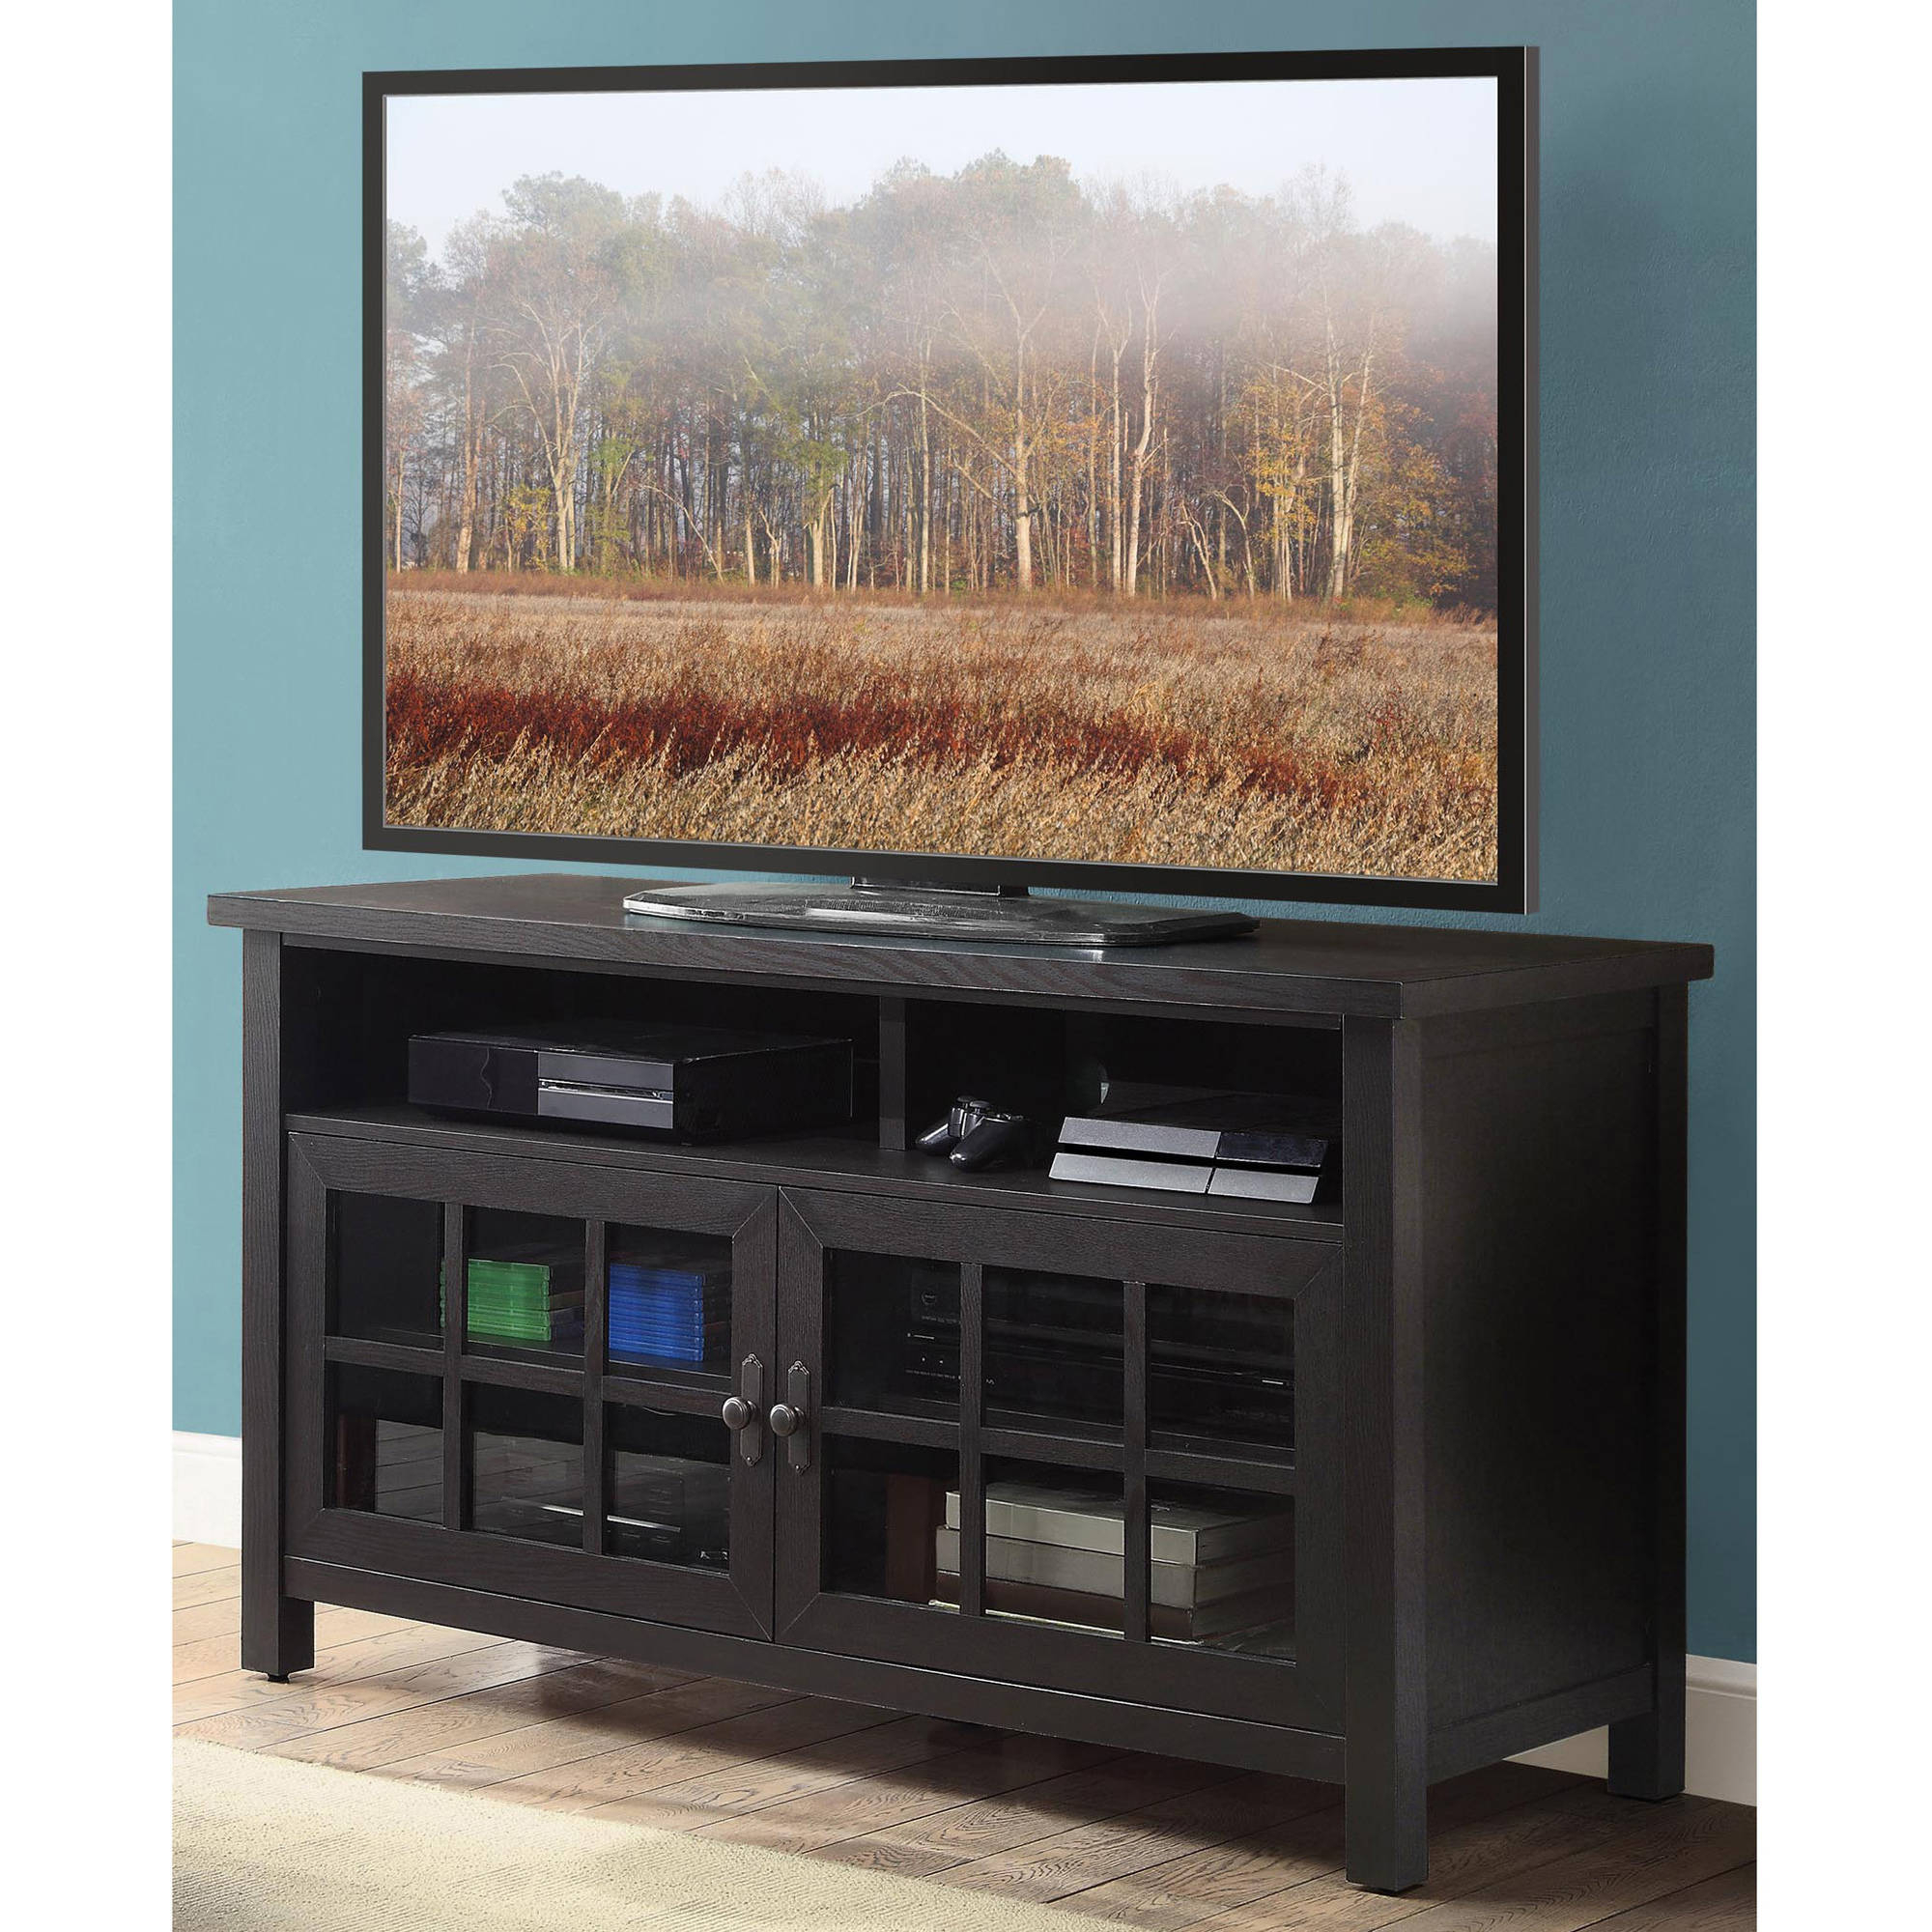 Better Homes And Gardens Oxford Square Av Console For Tv's Up To 60 Pertaining To Oxford 60 Inch Tv Stands (Gallery 2 of 20)